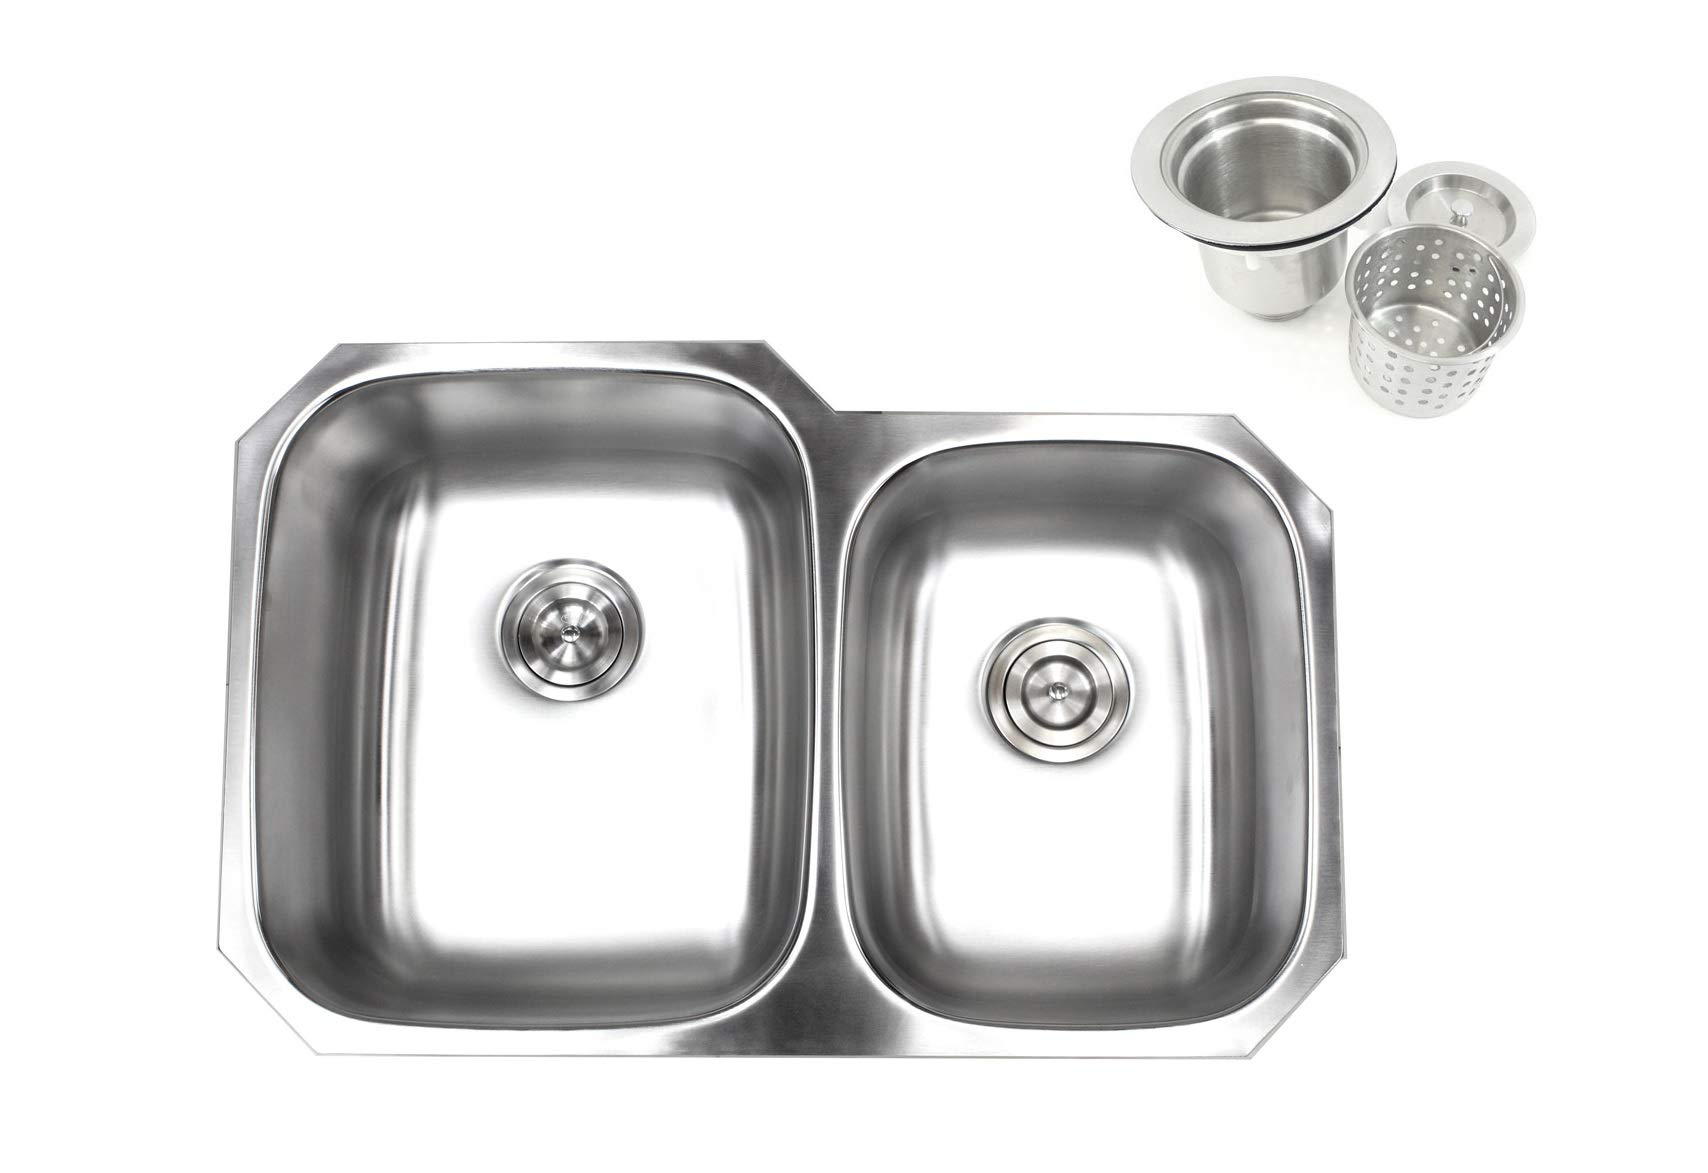 Kingsman 32 inch 18 Gauge Stainless Steel Undermount Double Bowl (60/40) Kitchen Sink (Sink with Strainer)